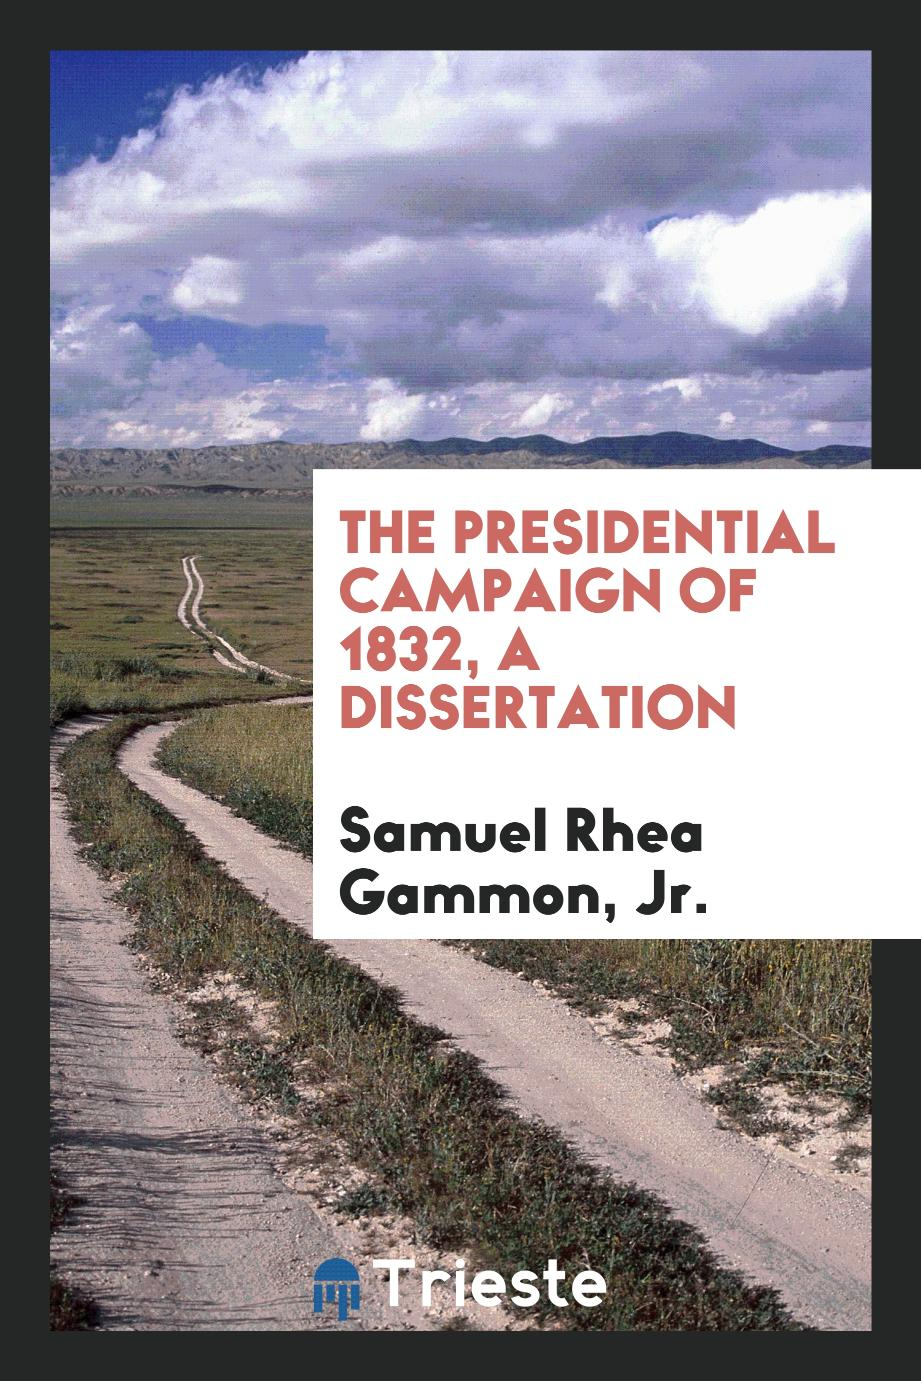 The Presidential Campaign of 1832, A Dissertation